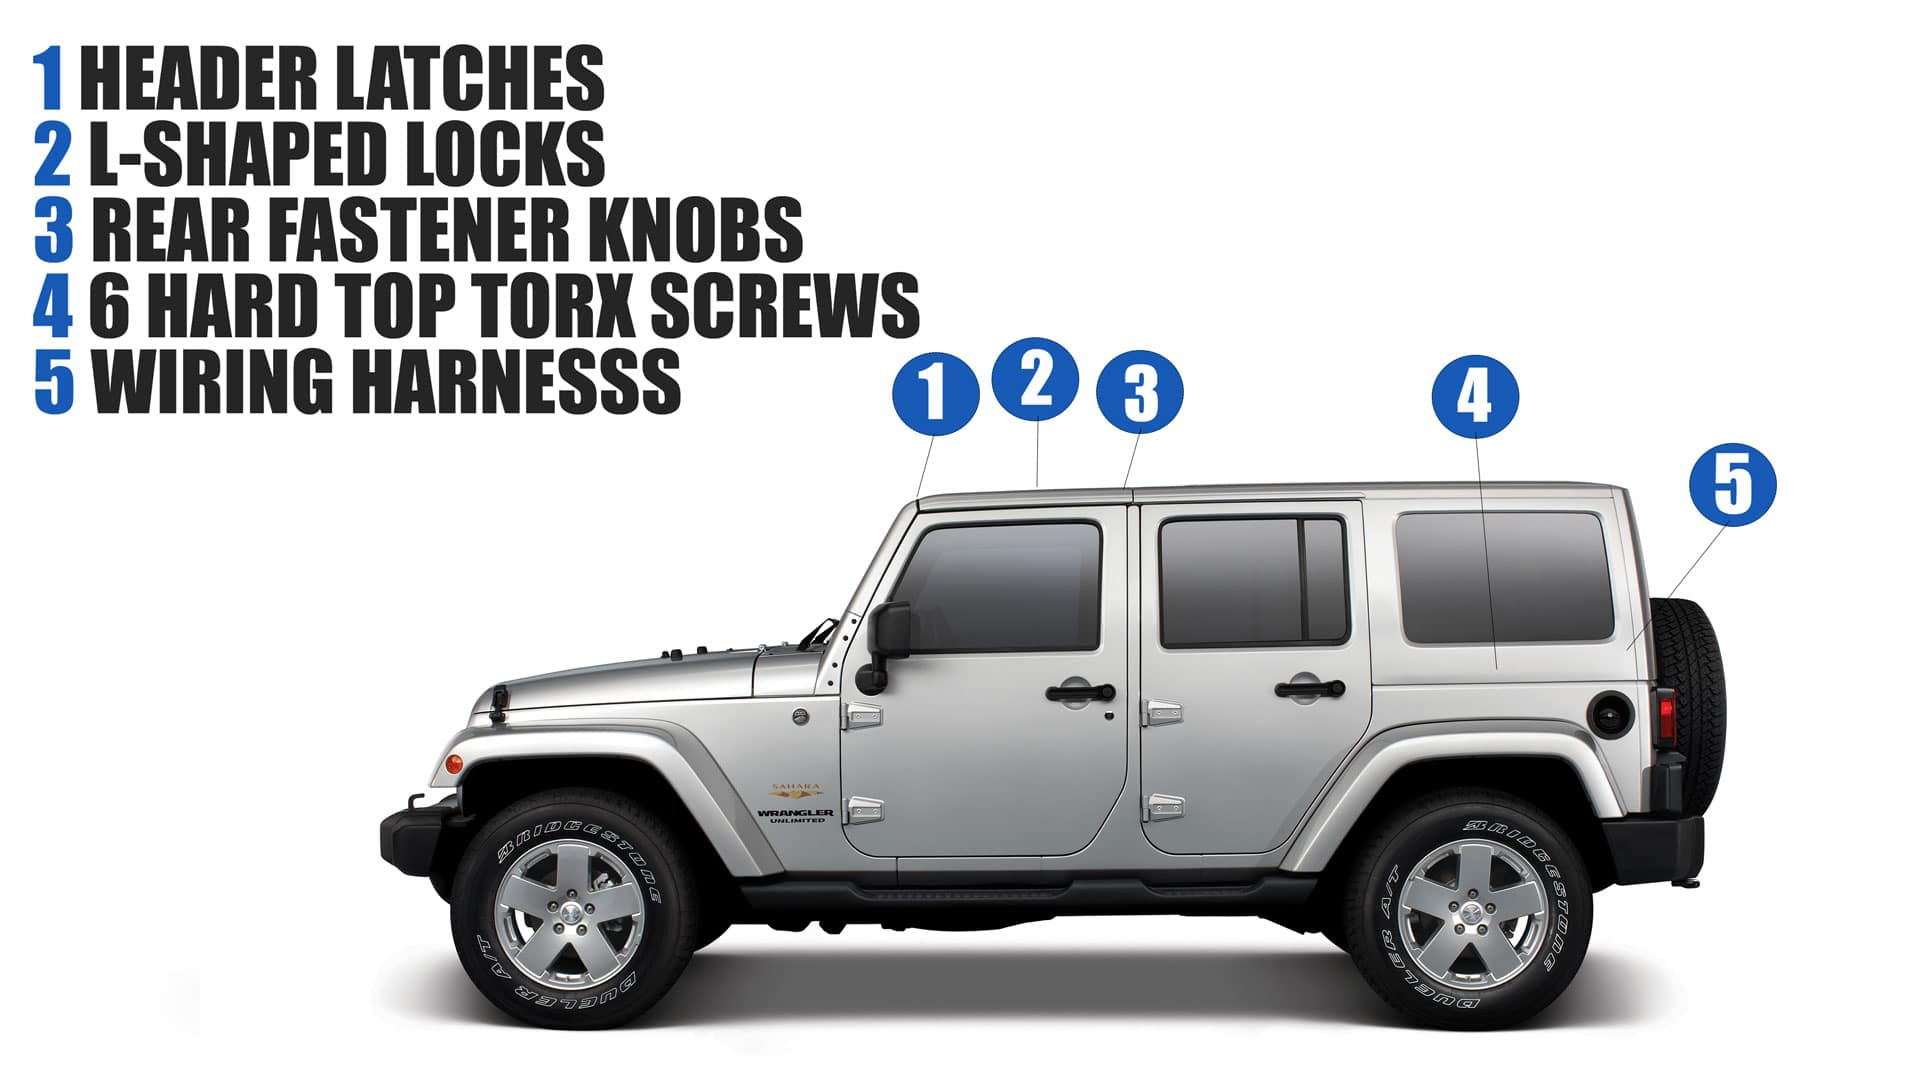 Remove The Hard Top On Jeep Wrangler Faqs Safford Of Winchester 1998 Grand Cherokee Lift Gate Wiring Diagram